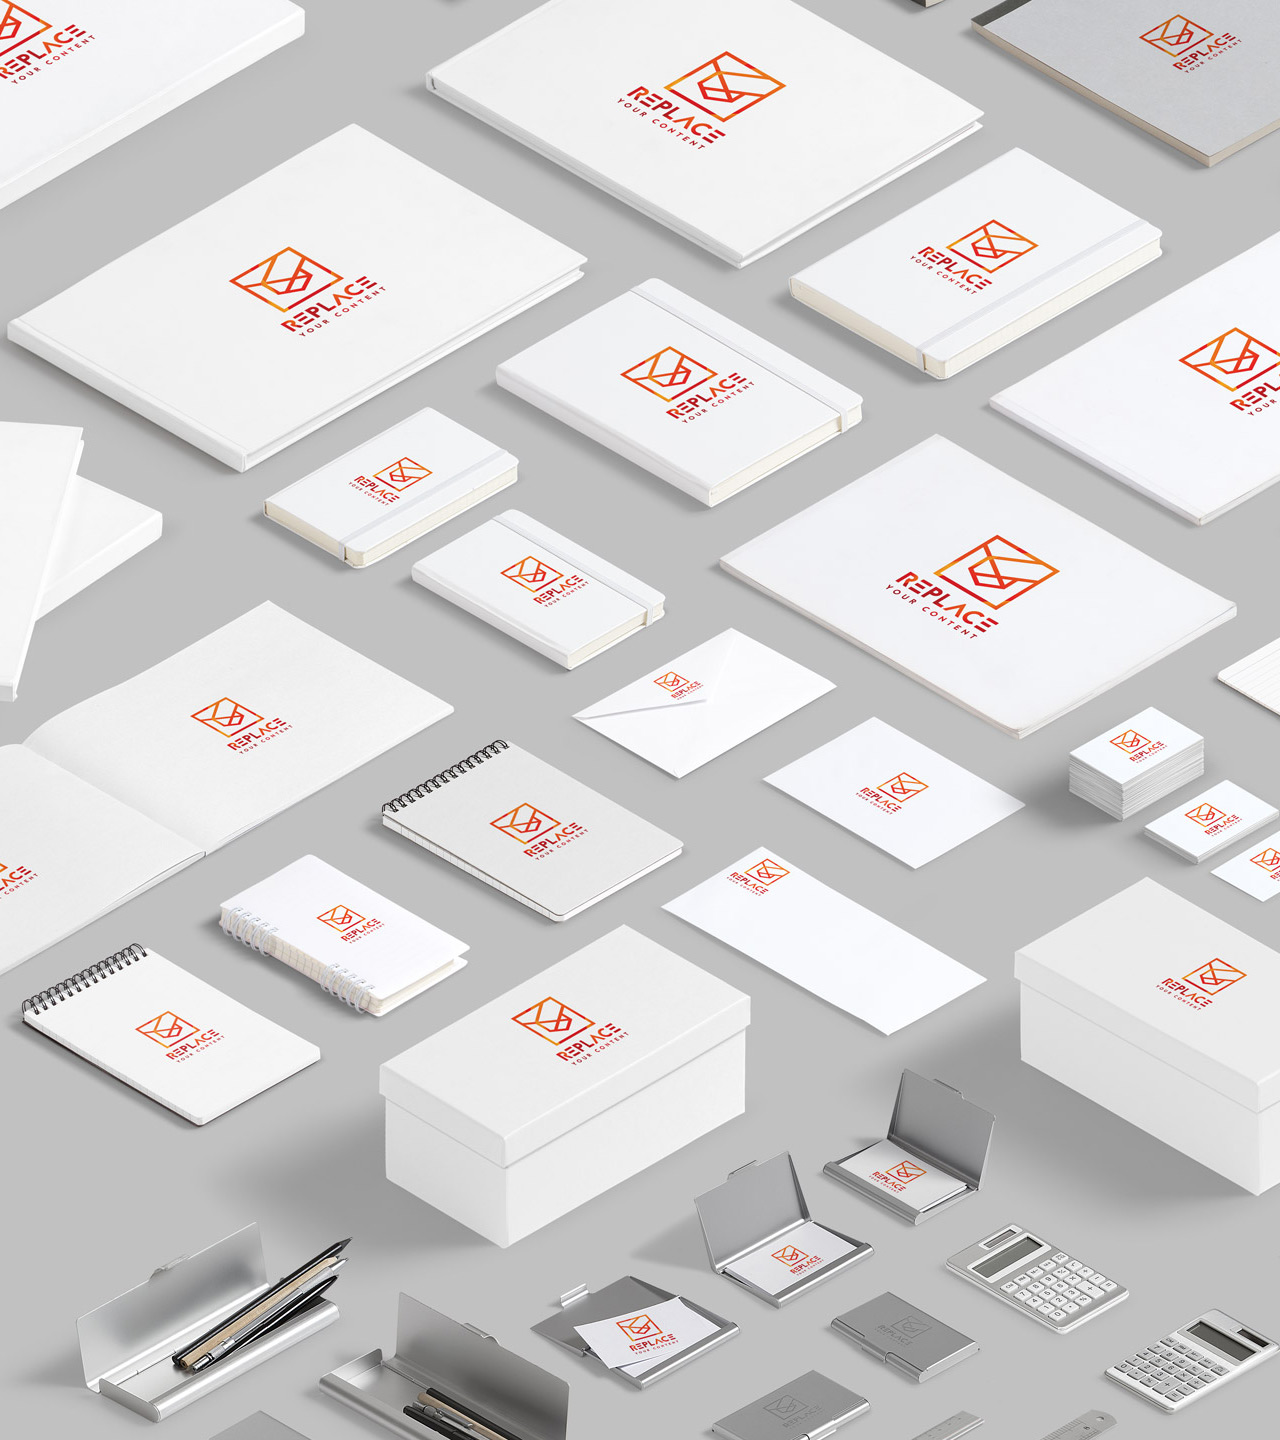 White Items - We've grouped items according to their colors. Business cards, notebooks, books, pens and many more item in light colors.Full Preview